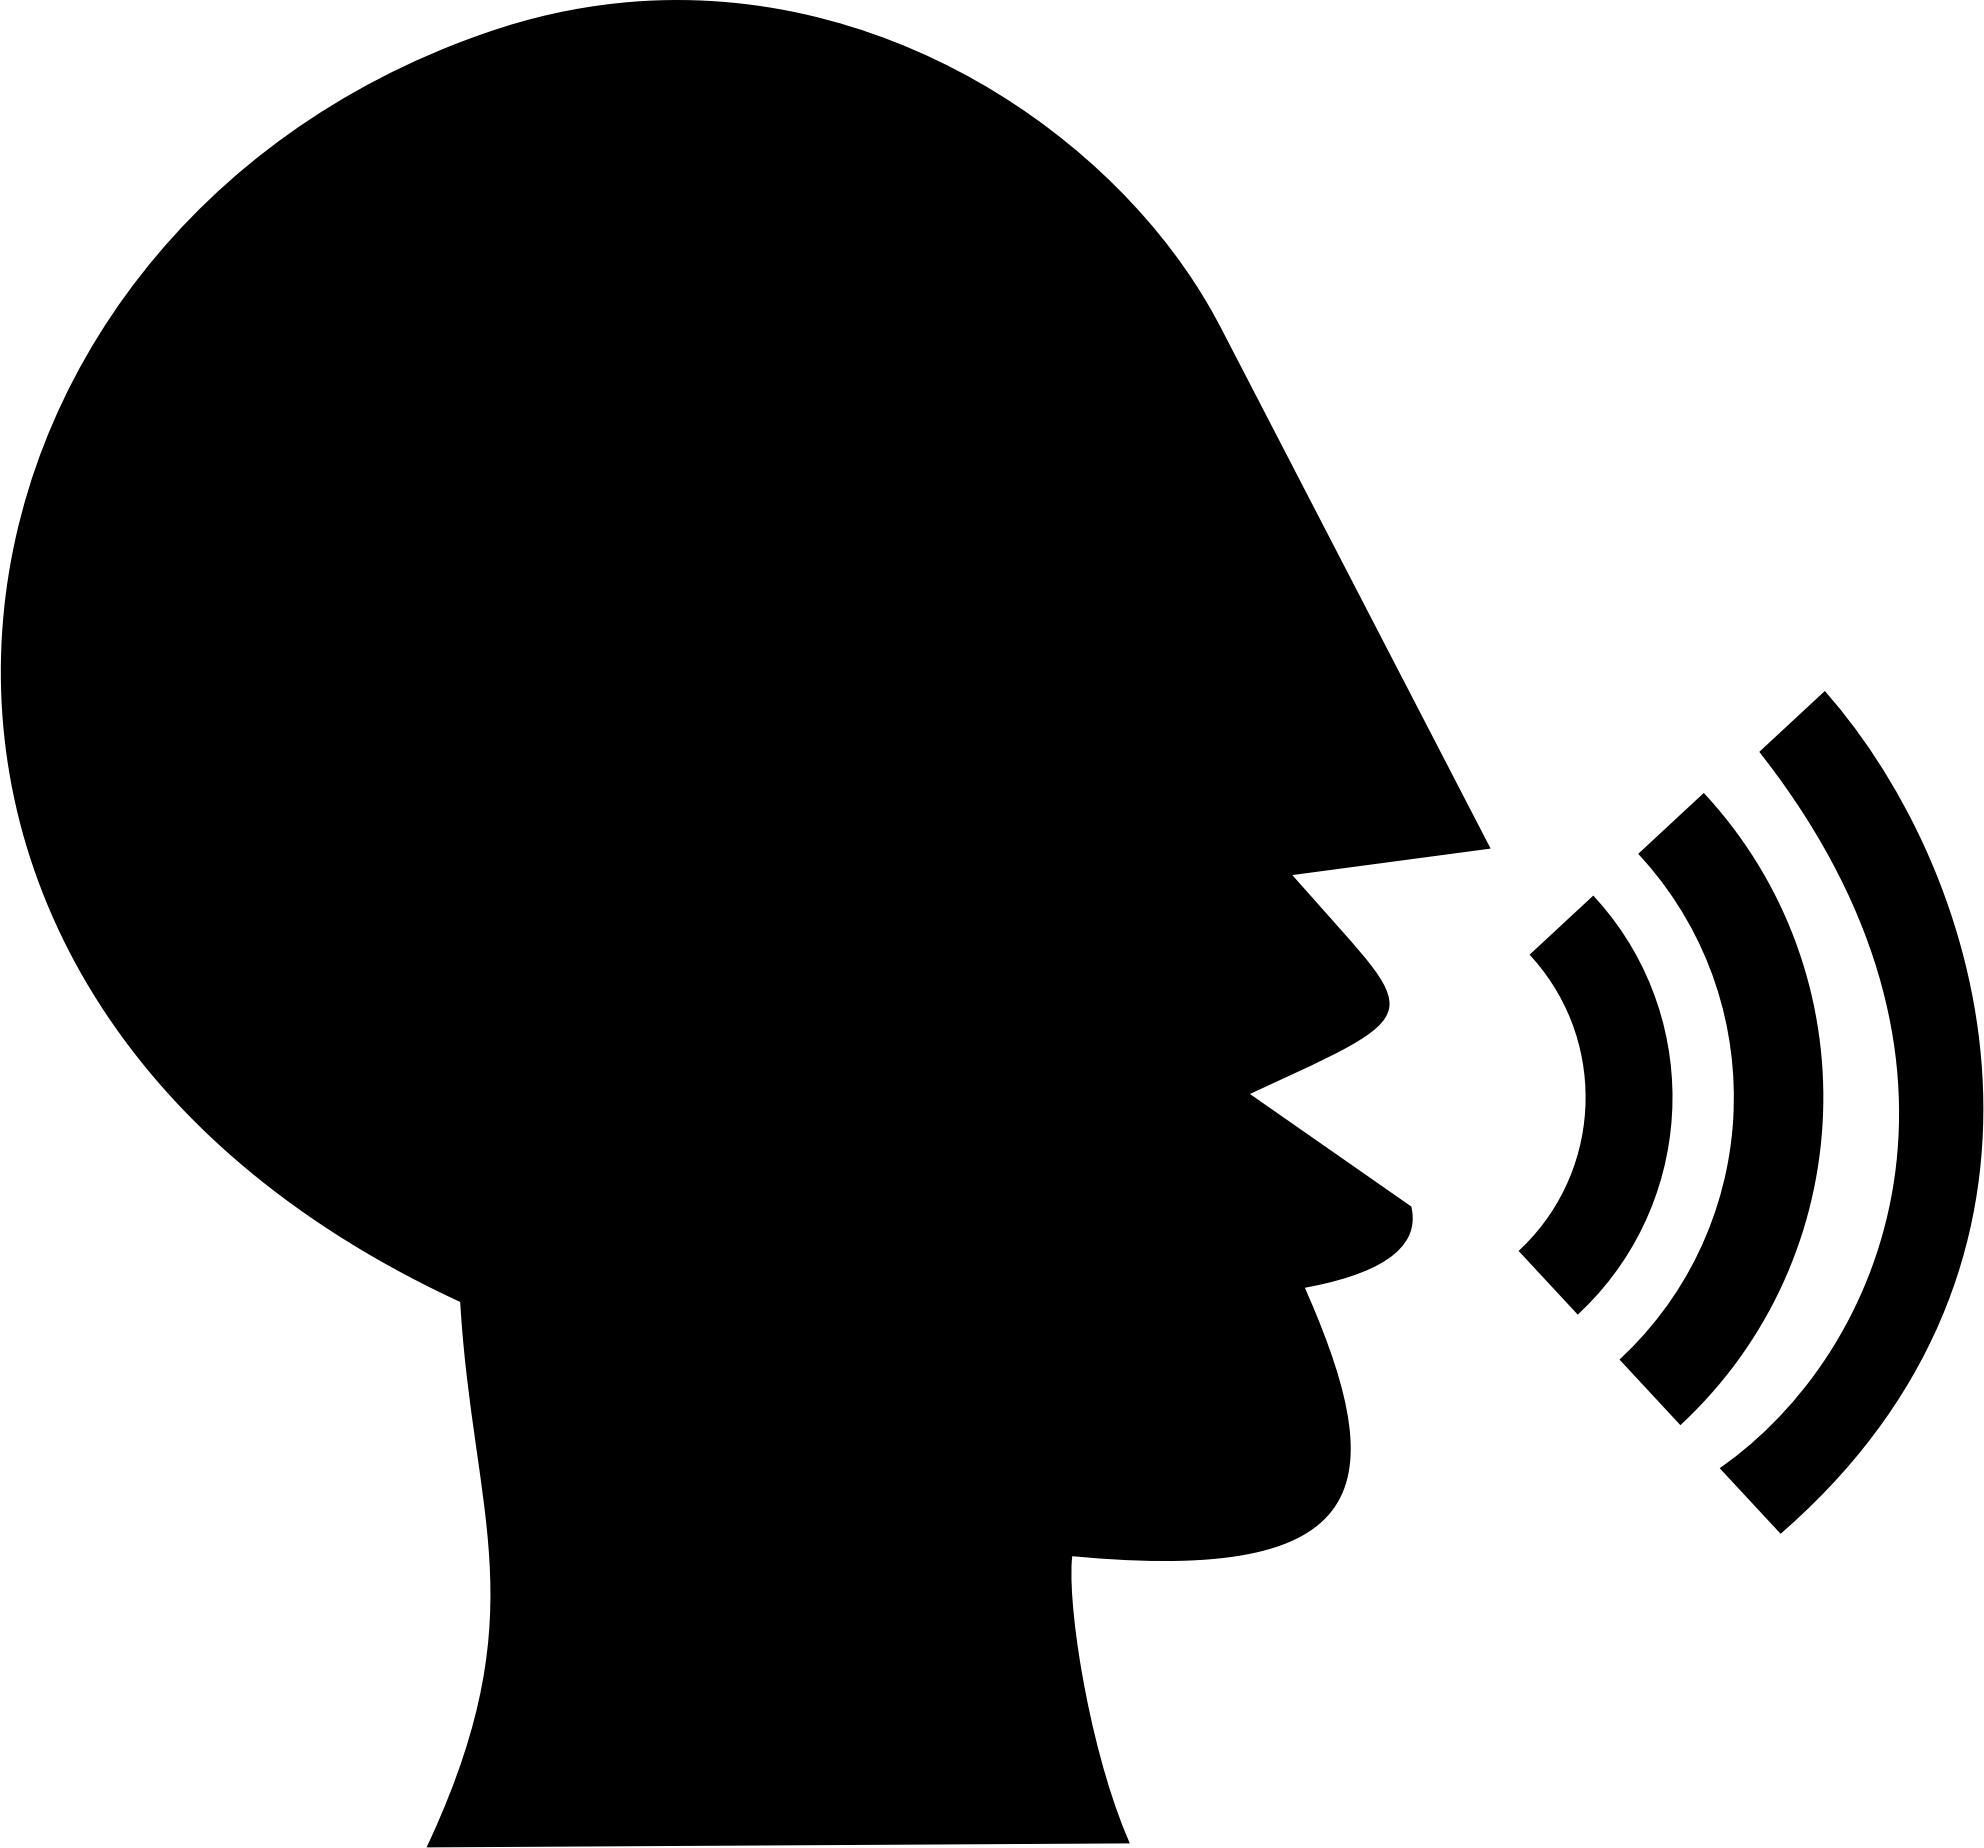 Silhouette head at getdrawings. Yelling clipart speak loud